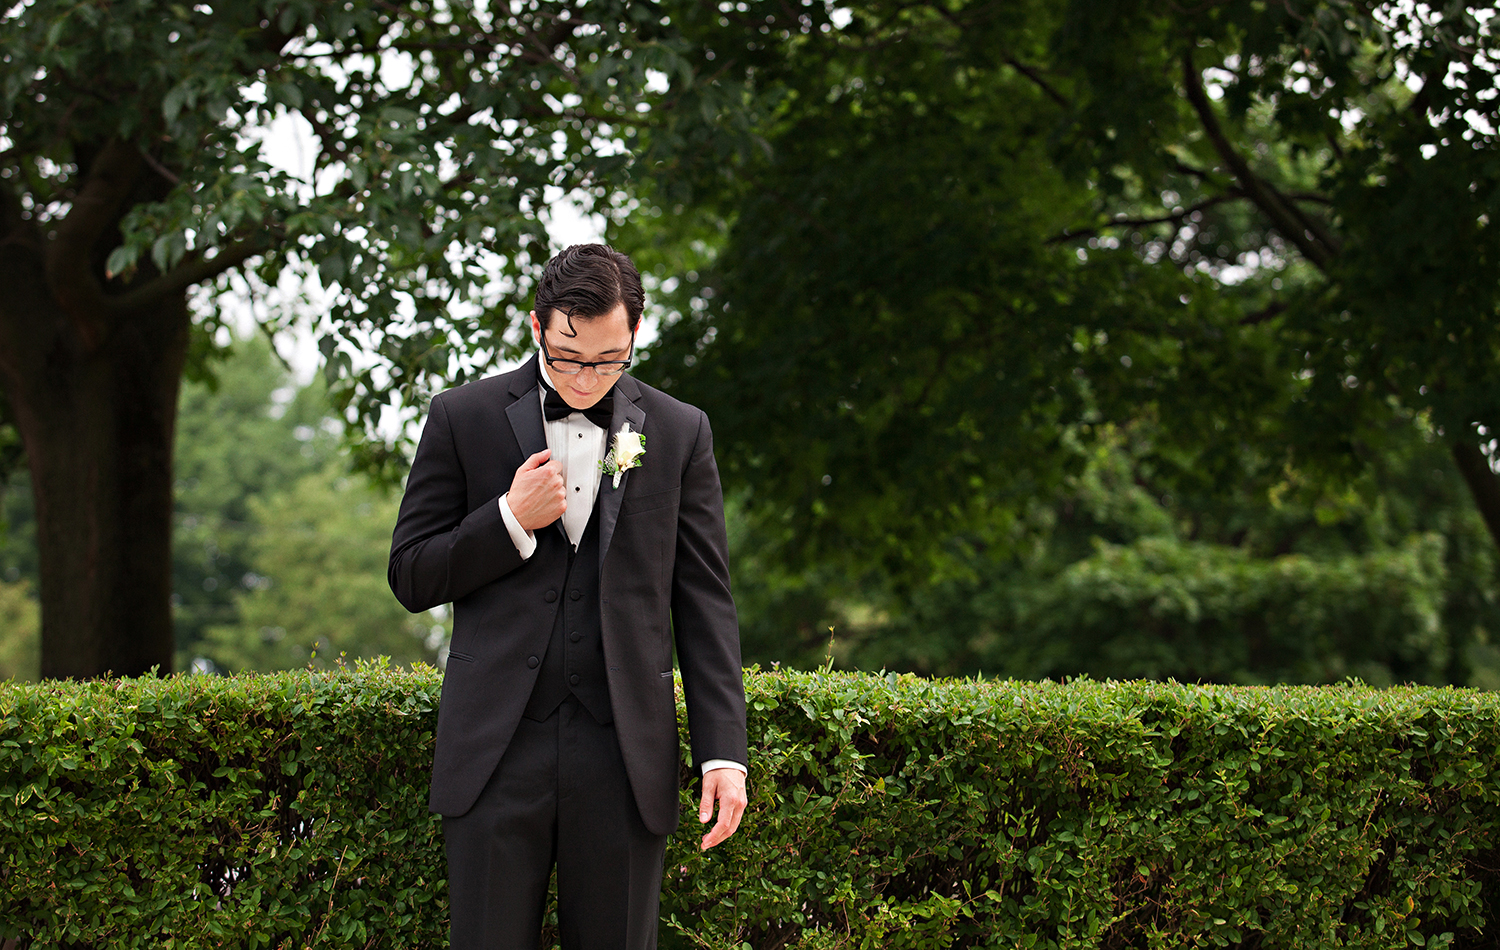 Osgood Ohio, 1920 inspired wedding, Great Gatsby wedding, groom details, cool groom, classic tux